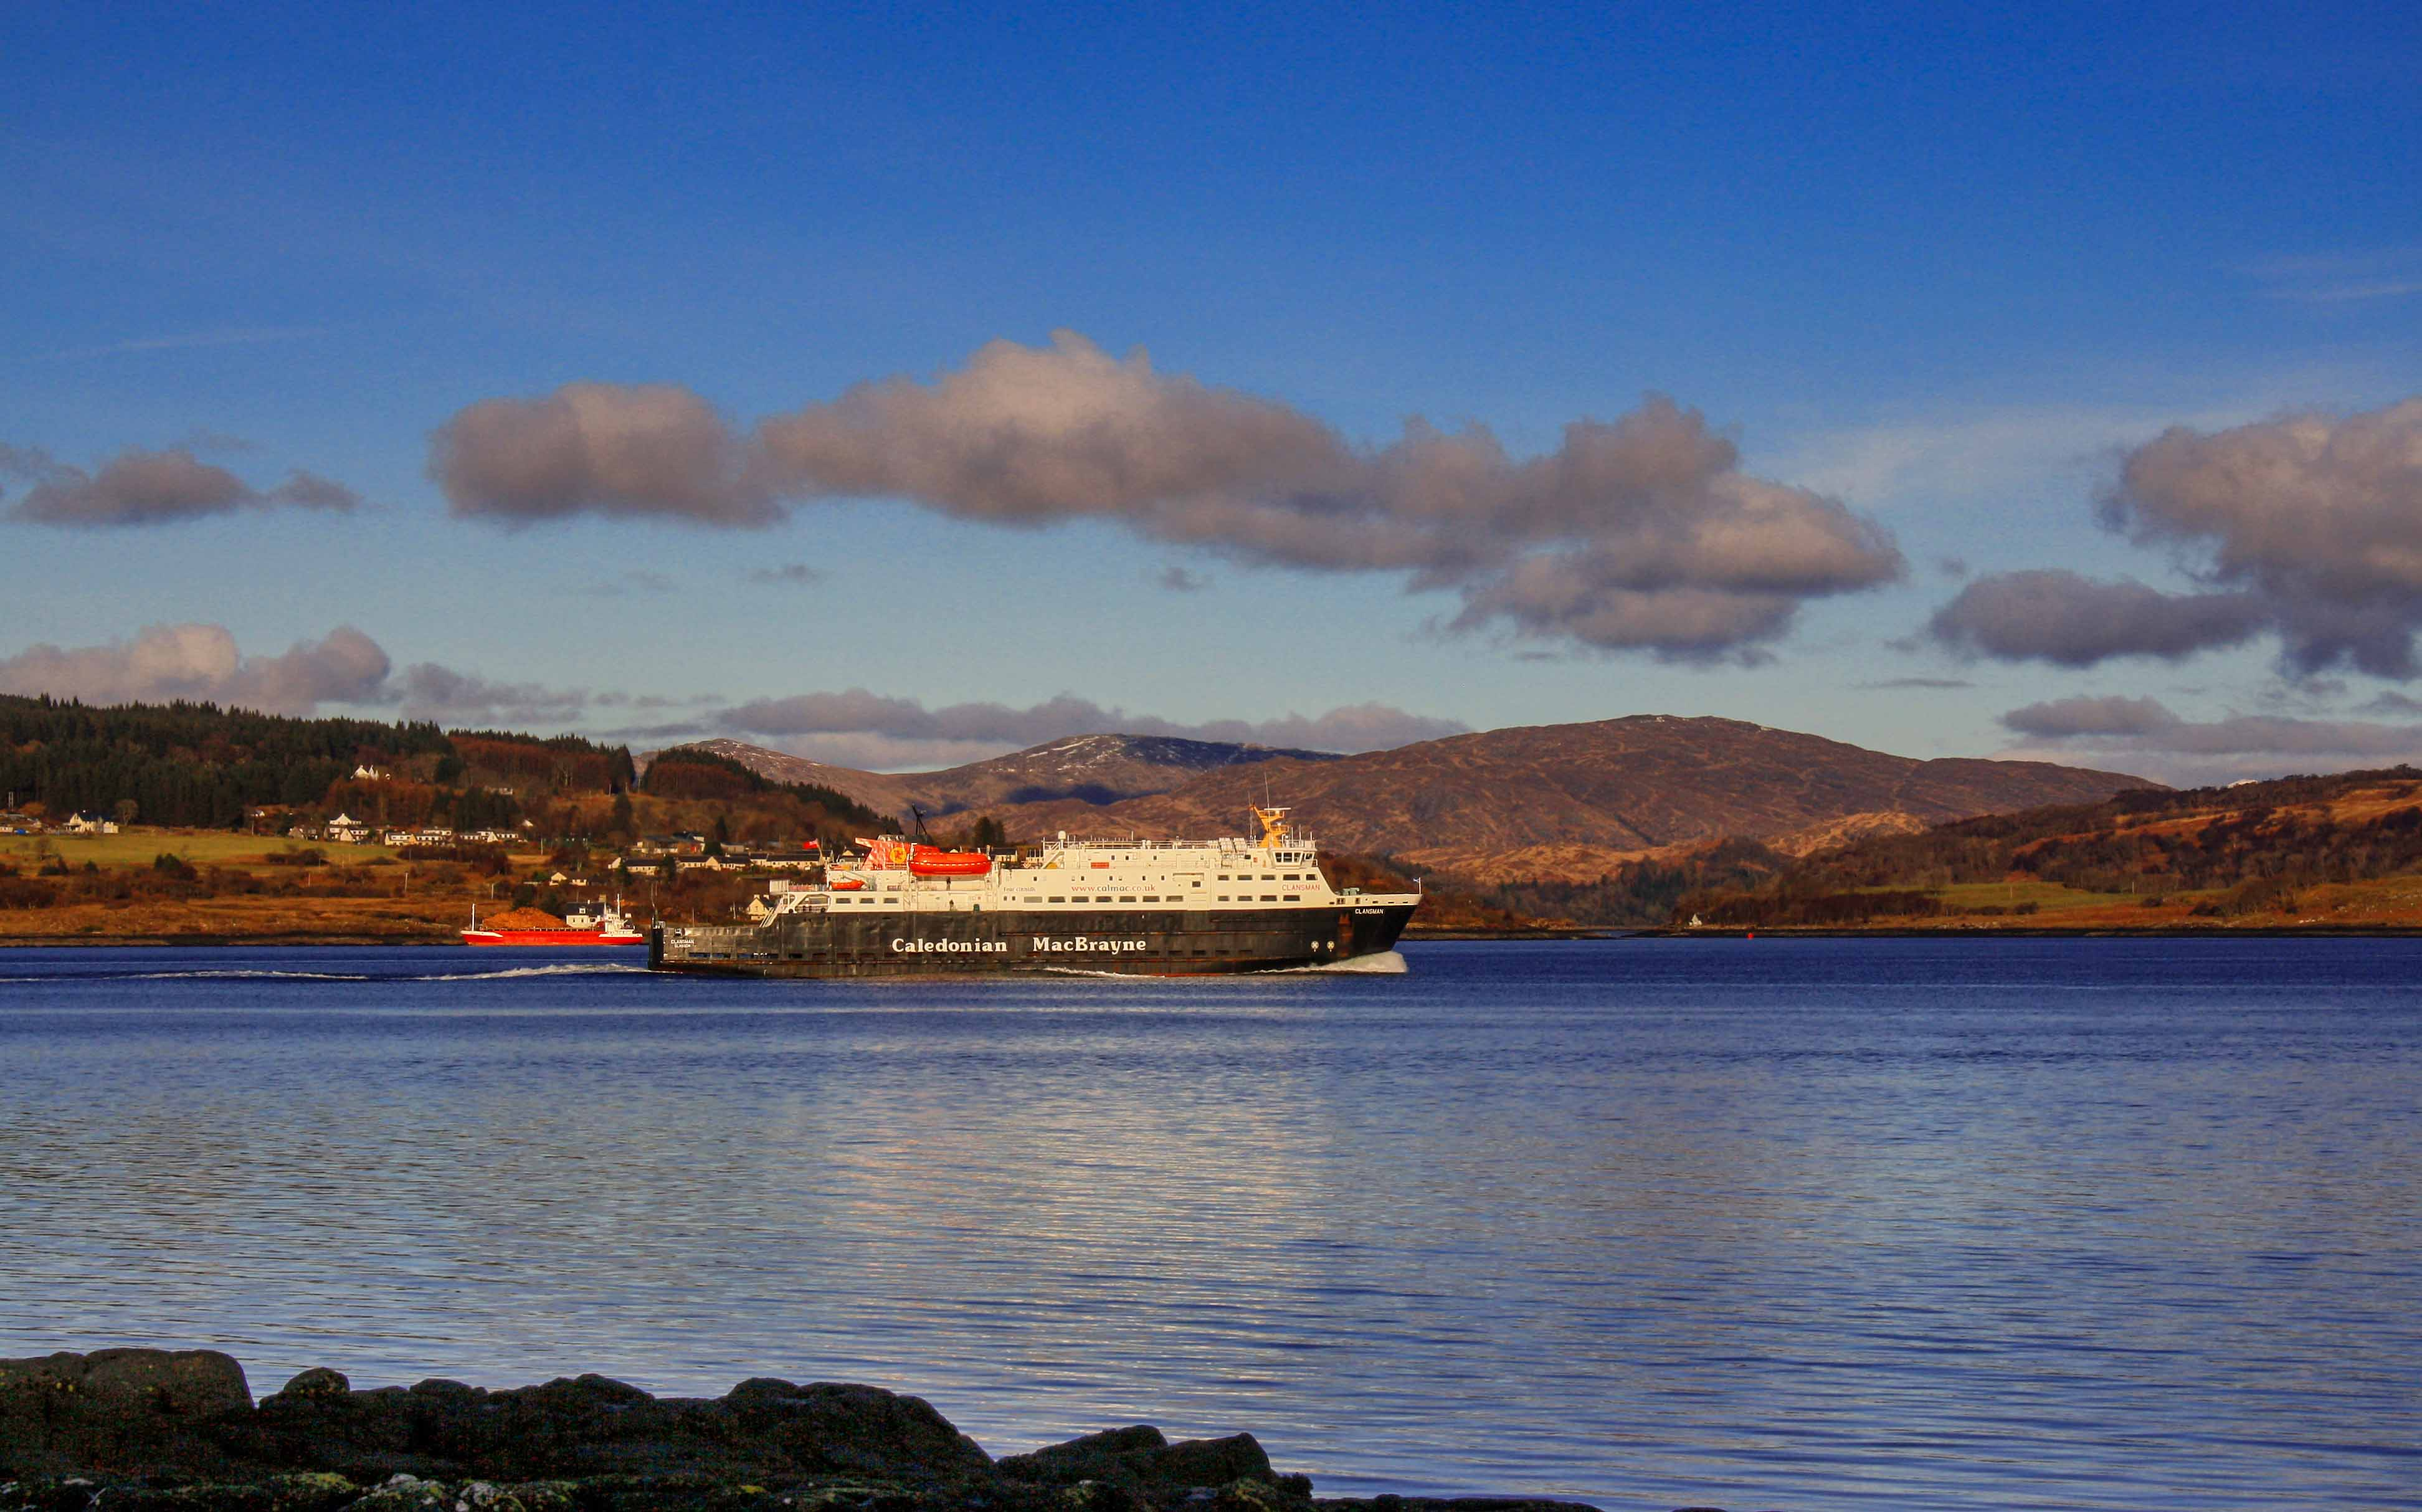 Clansman in the Sound of Mull (Ships of CalMac)